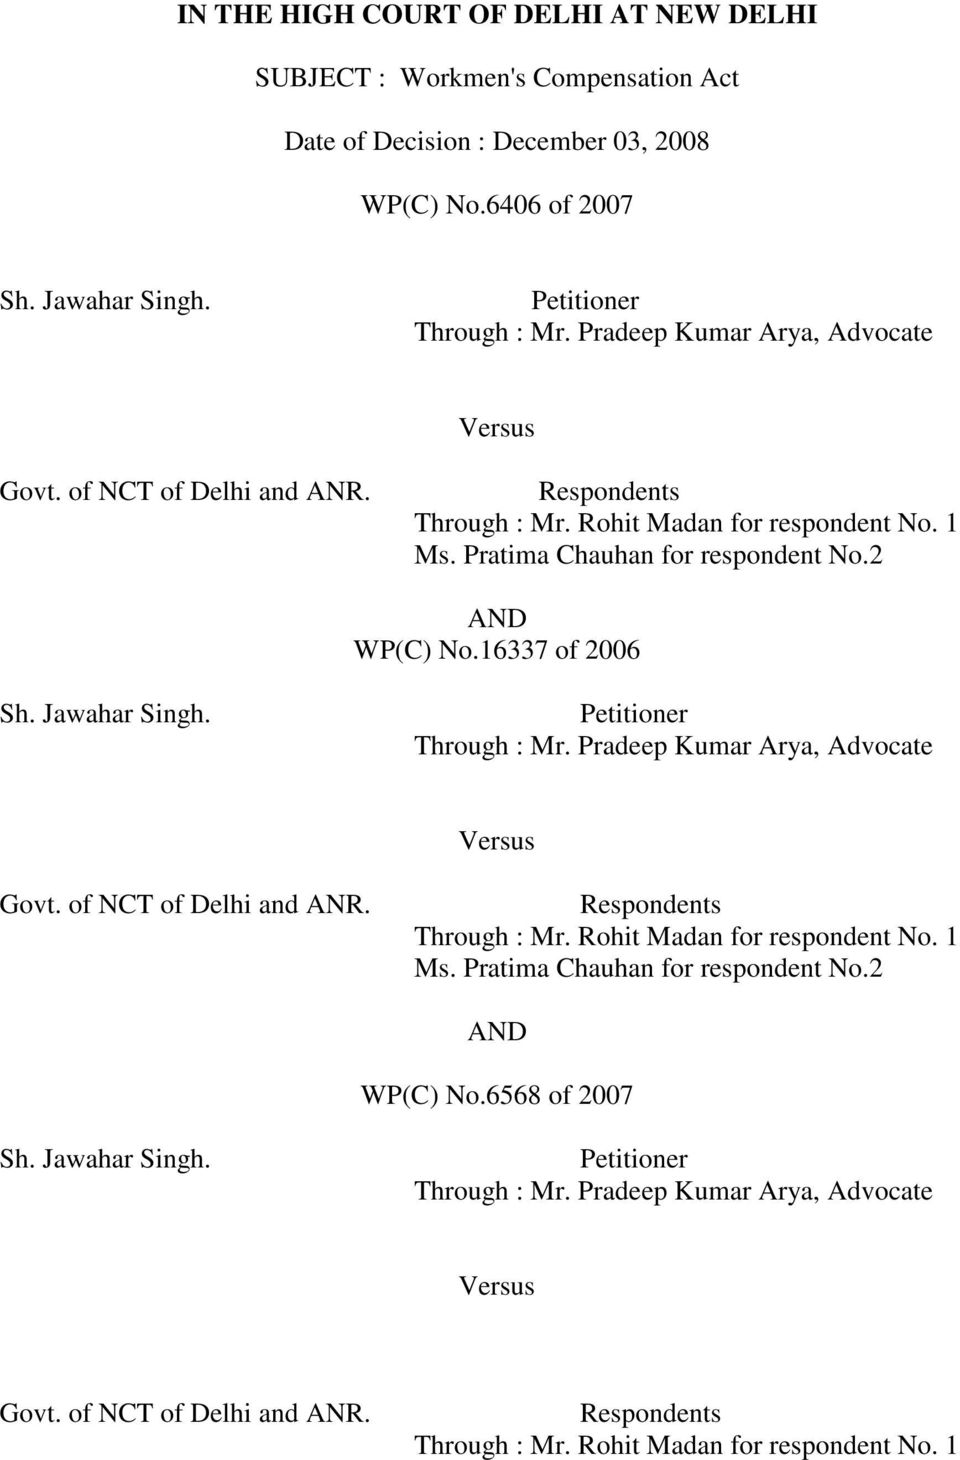 16337 of 2006 Sh. Jawahar Singh. Petitioner Through : Mr. 6568 of 2007 Sh. Jawahar Singh. Petitioner Through : Mr. Pradeep Kumar Arya, Advocate Versus Govt. of NCT of Delhi and ANR.